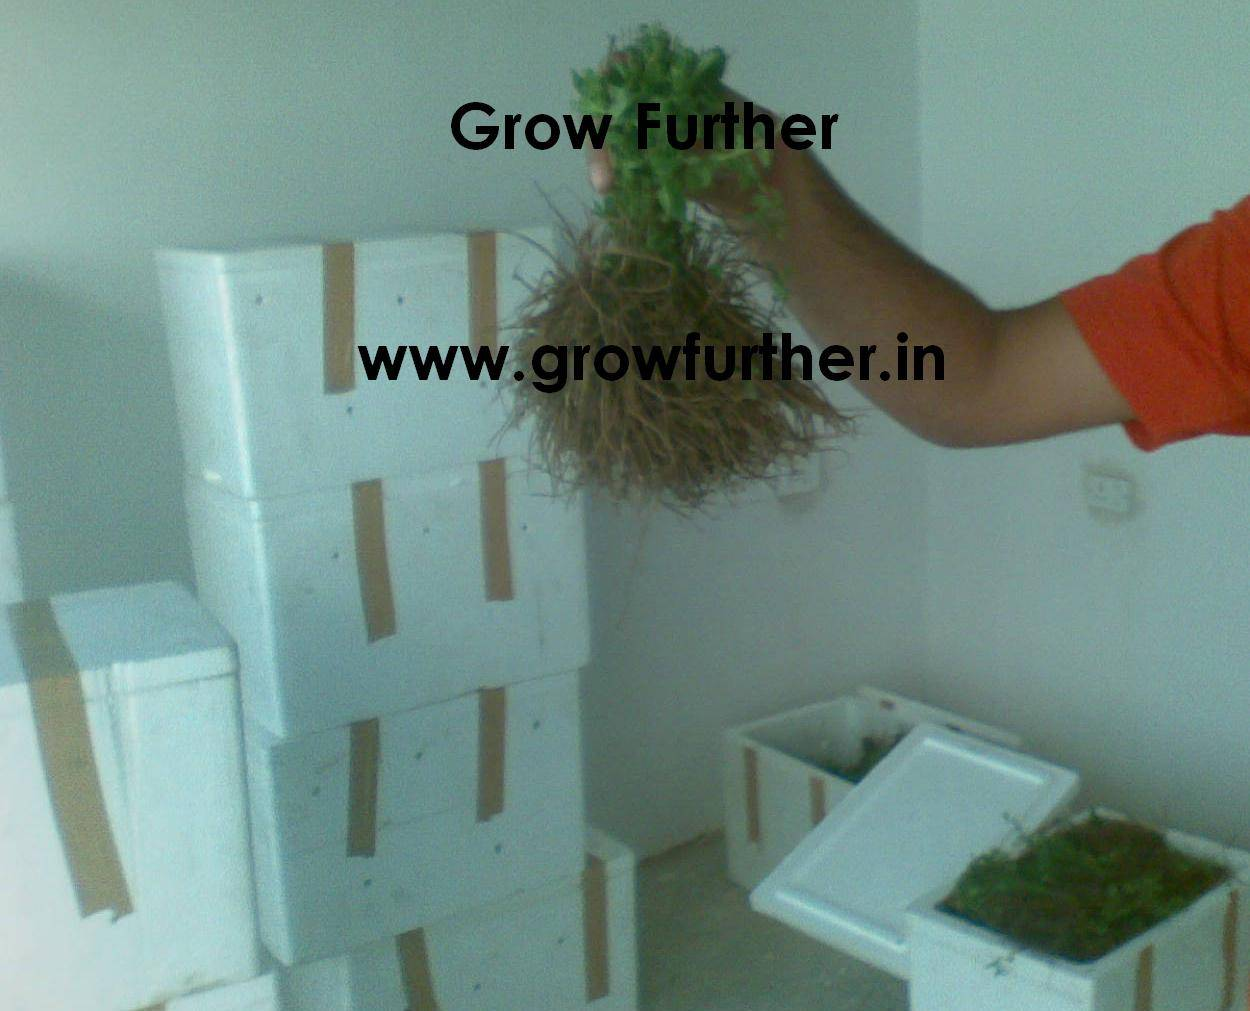 Medicinal crop farming - planting maerial seeds/plants available